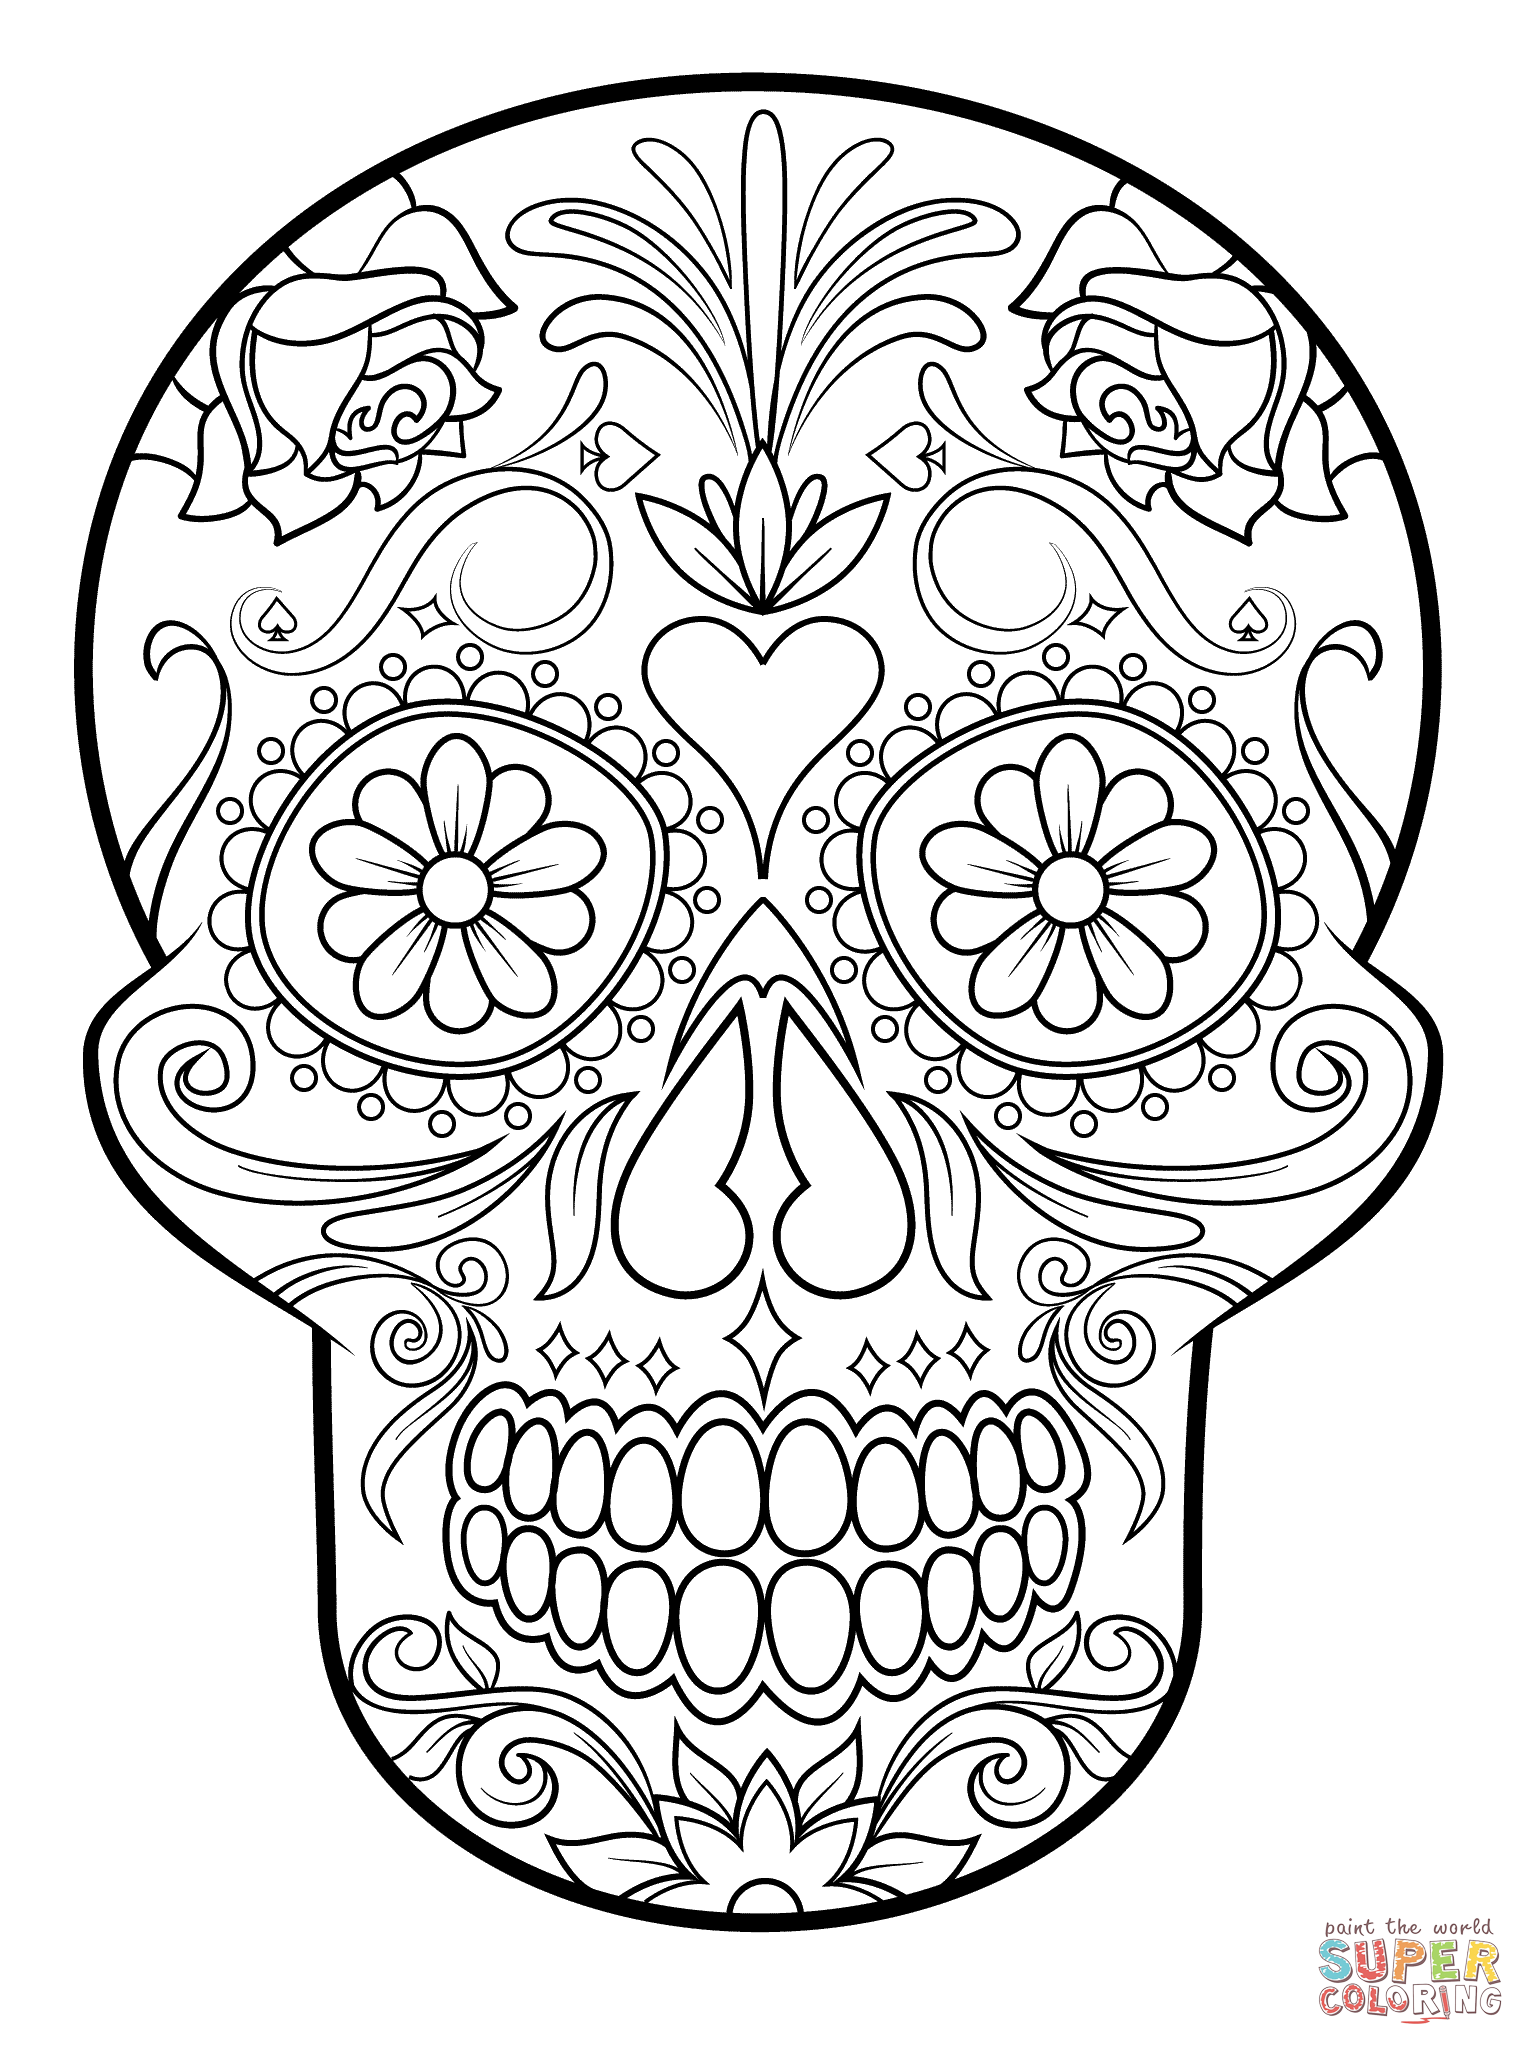 Coloring pictures skulls - Sugar Skull Coloring Page From Sugar Skulls Category Select From 24104 Printable Crafts Of Cartoons Nature Animals Bible And Many More